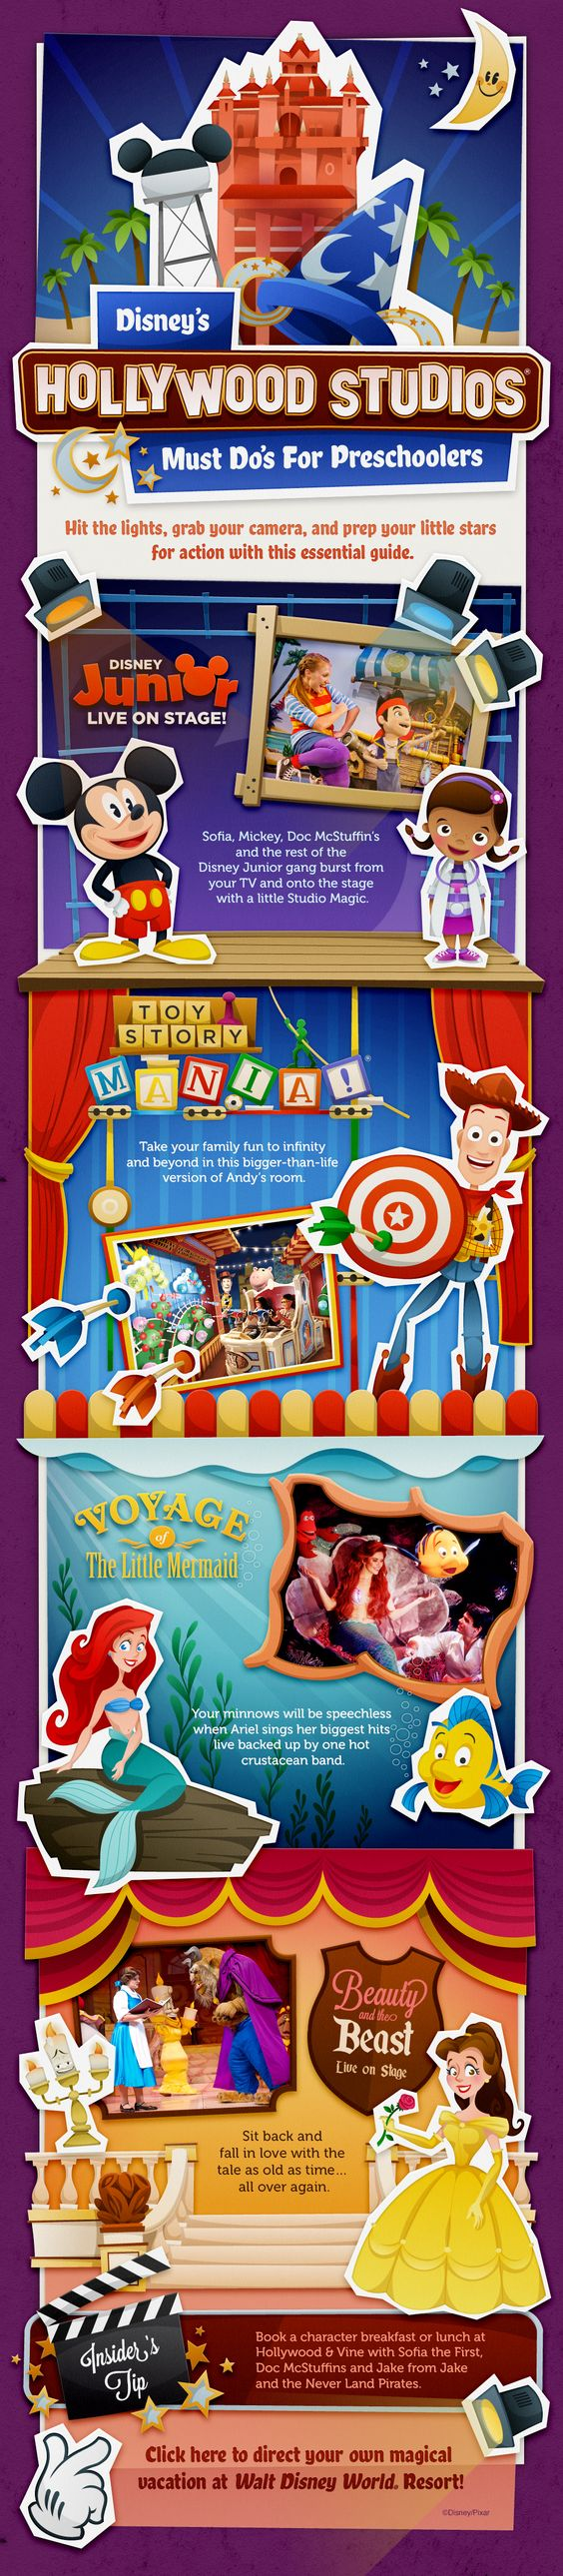 Disney's Hollywood Studios Must Do's for Preschoolers (or select another age group)! Disney Junior, Mickey Mouse Club, Doc McStuffins, Sofia the First, Toy Story Mania, Voyage of the Little Mermaid, Beauty and the Beast Live on Stage!